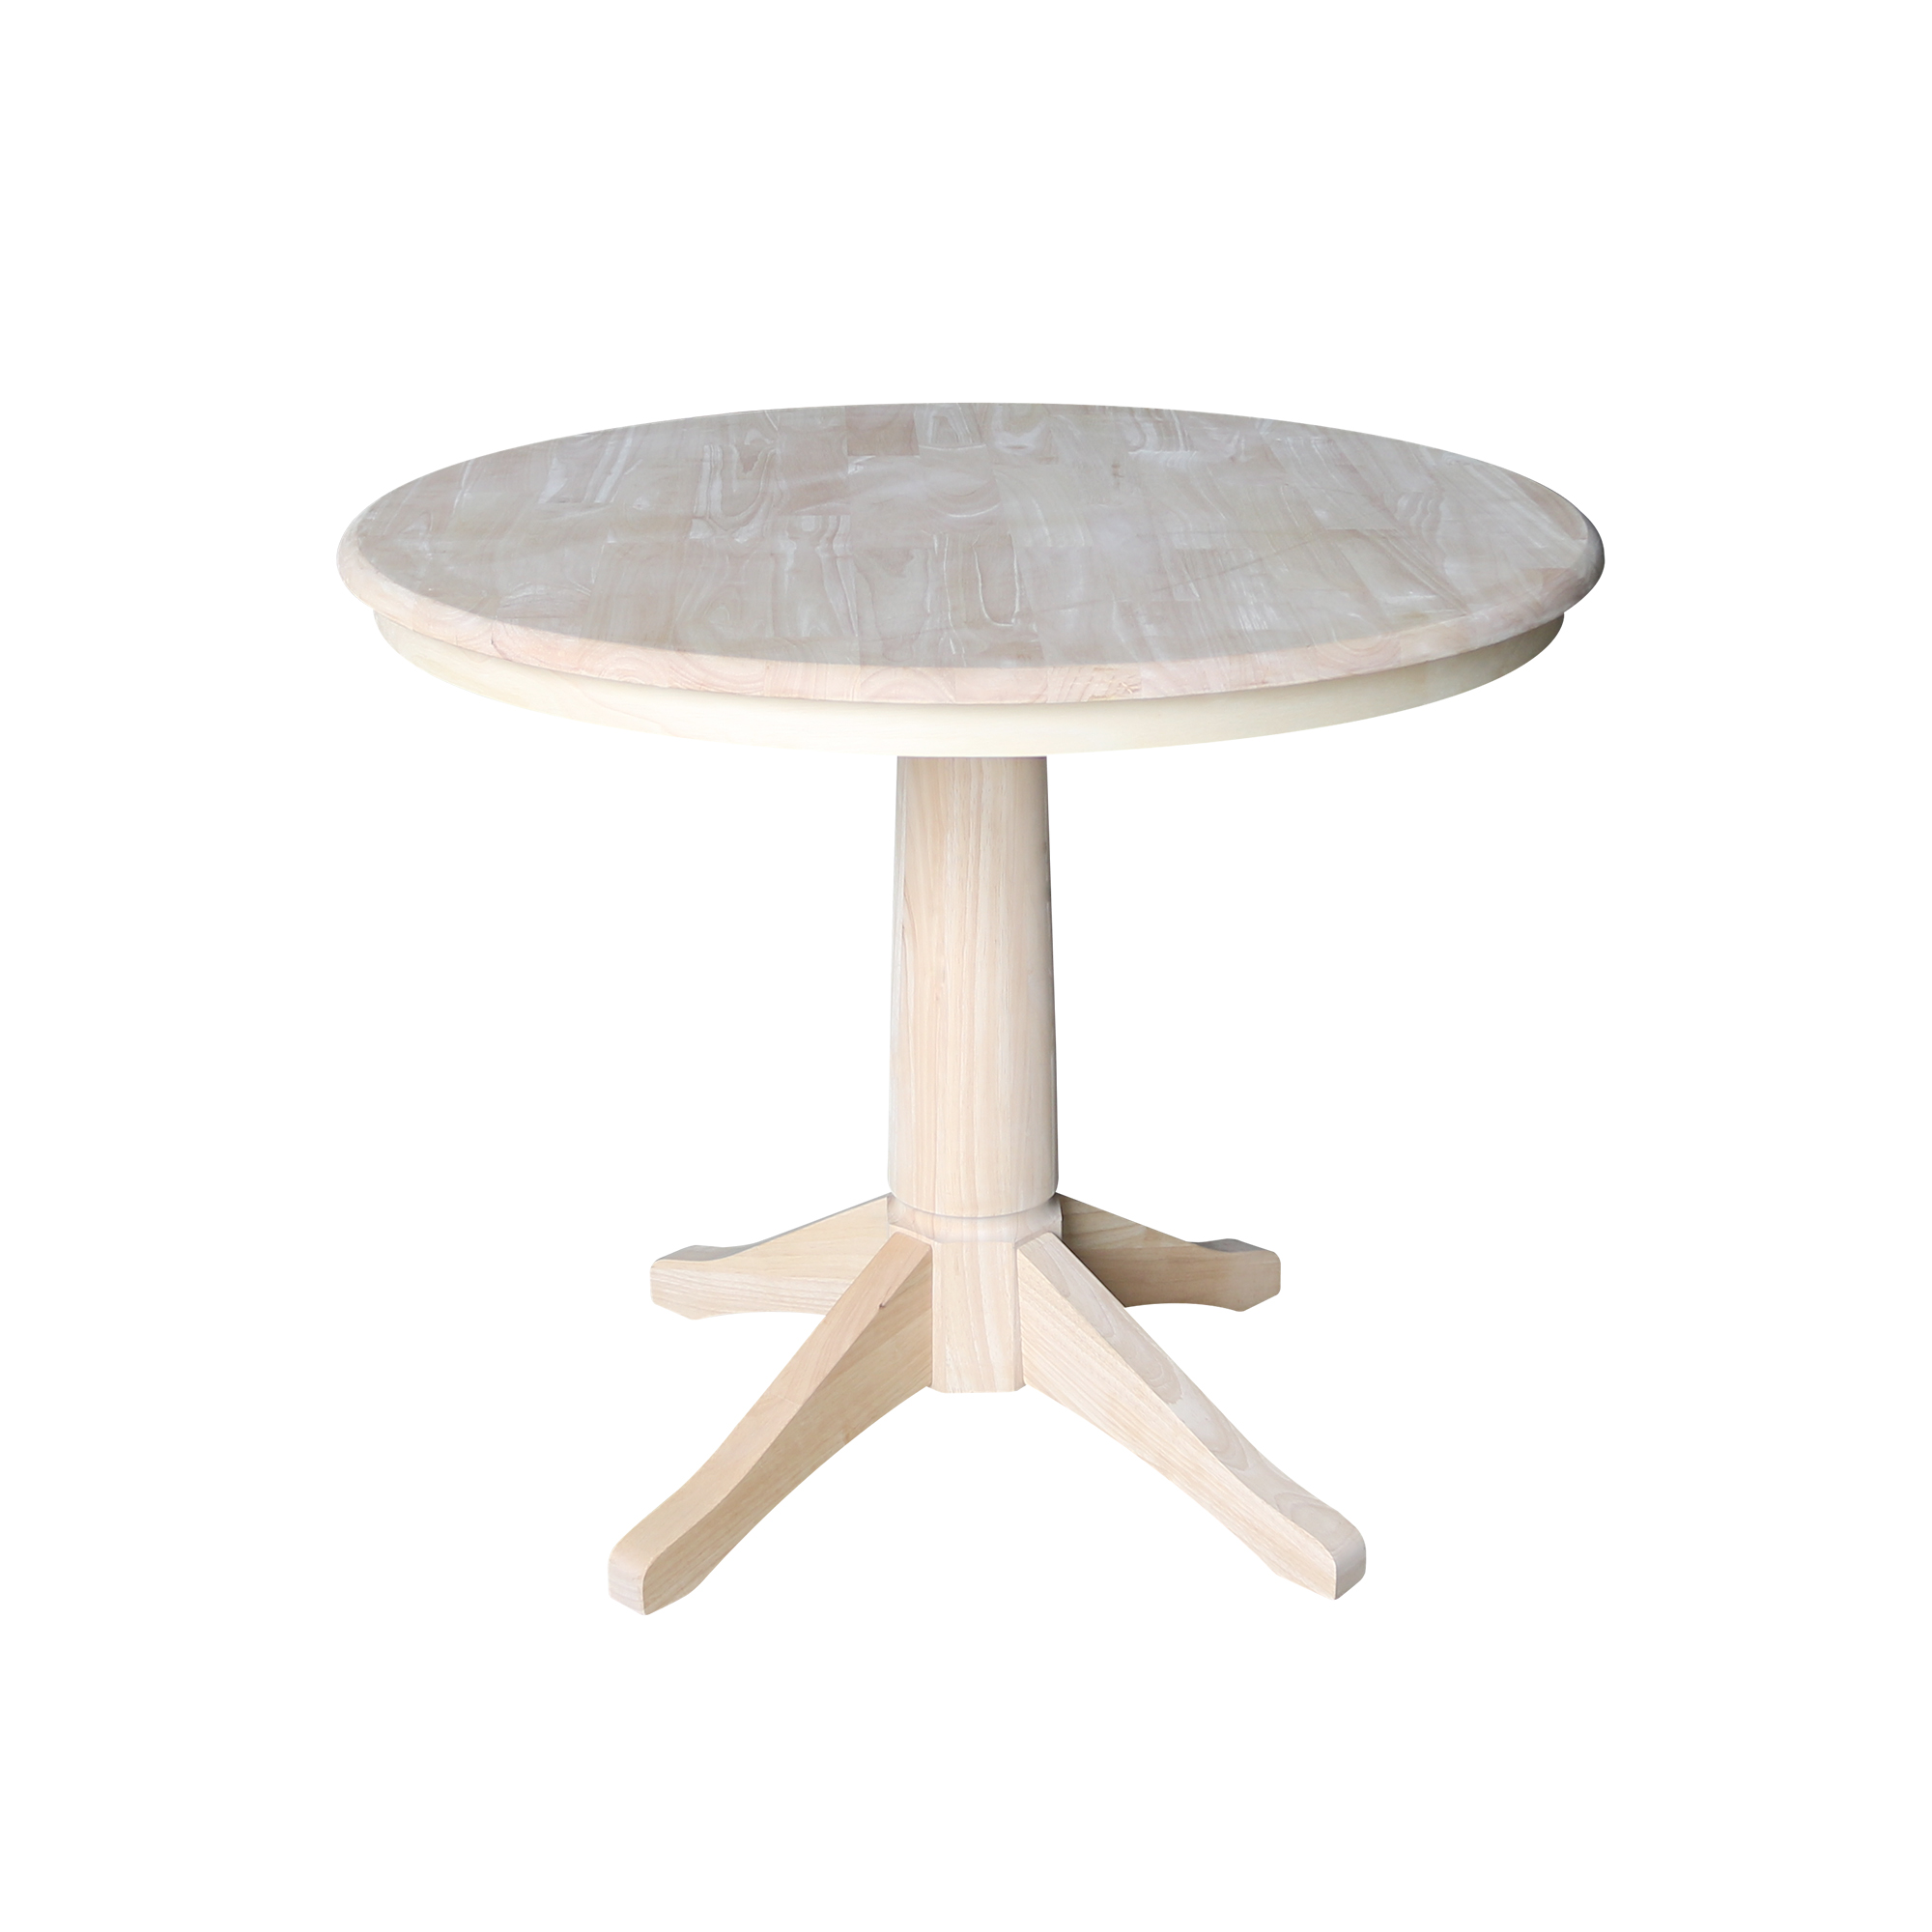 36 Round Pedestal Dining Table Unfinished